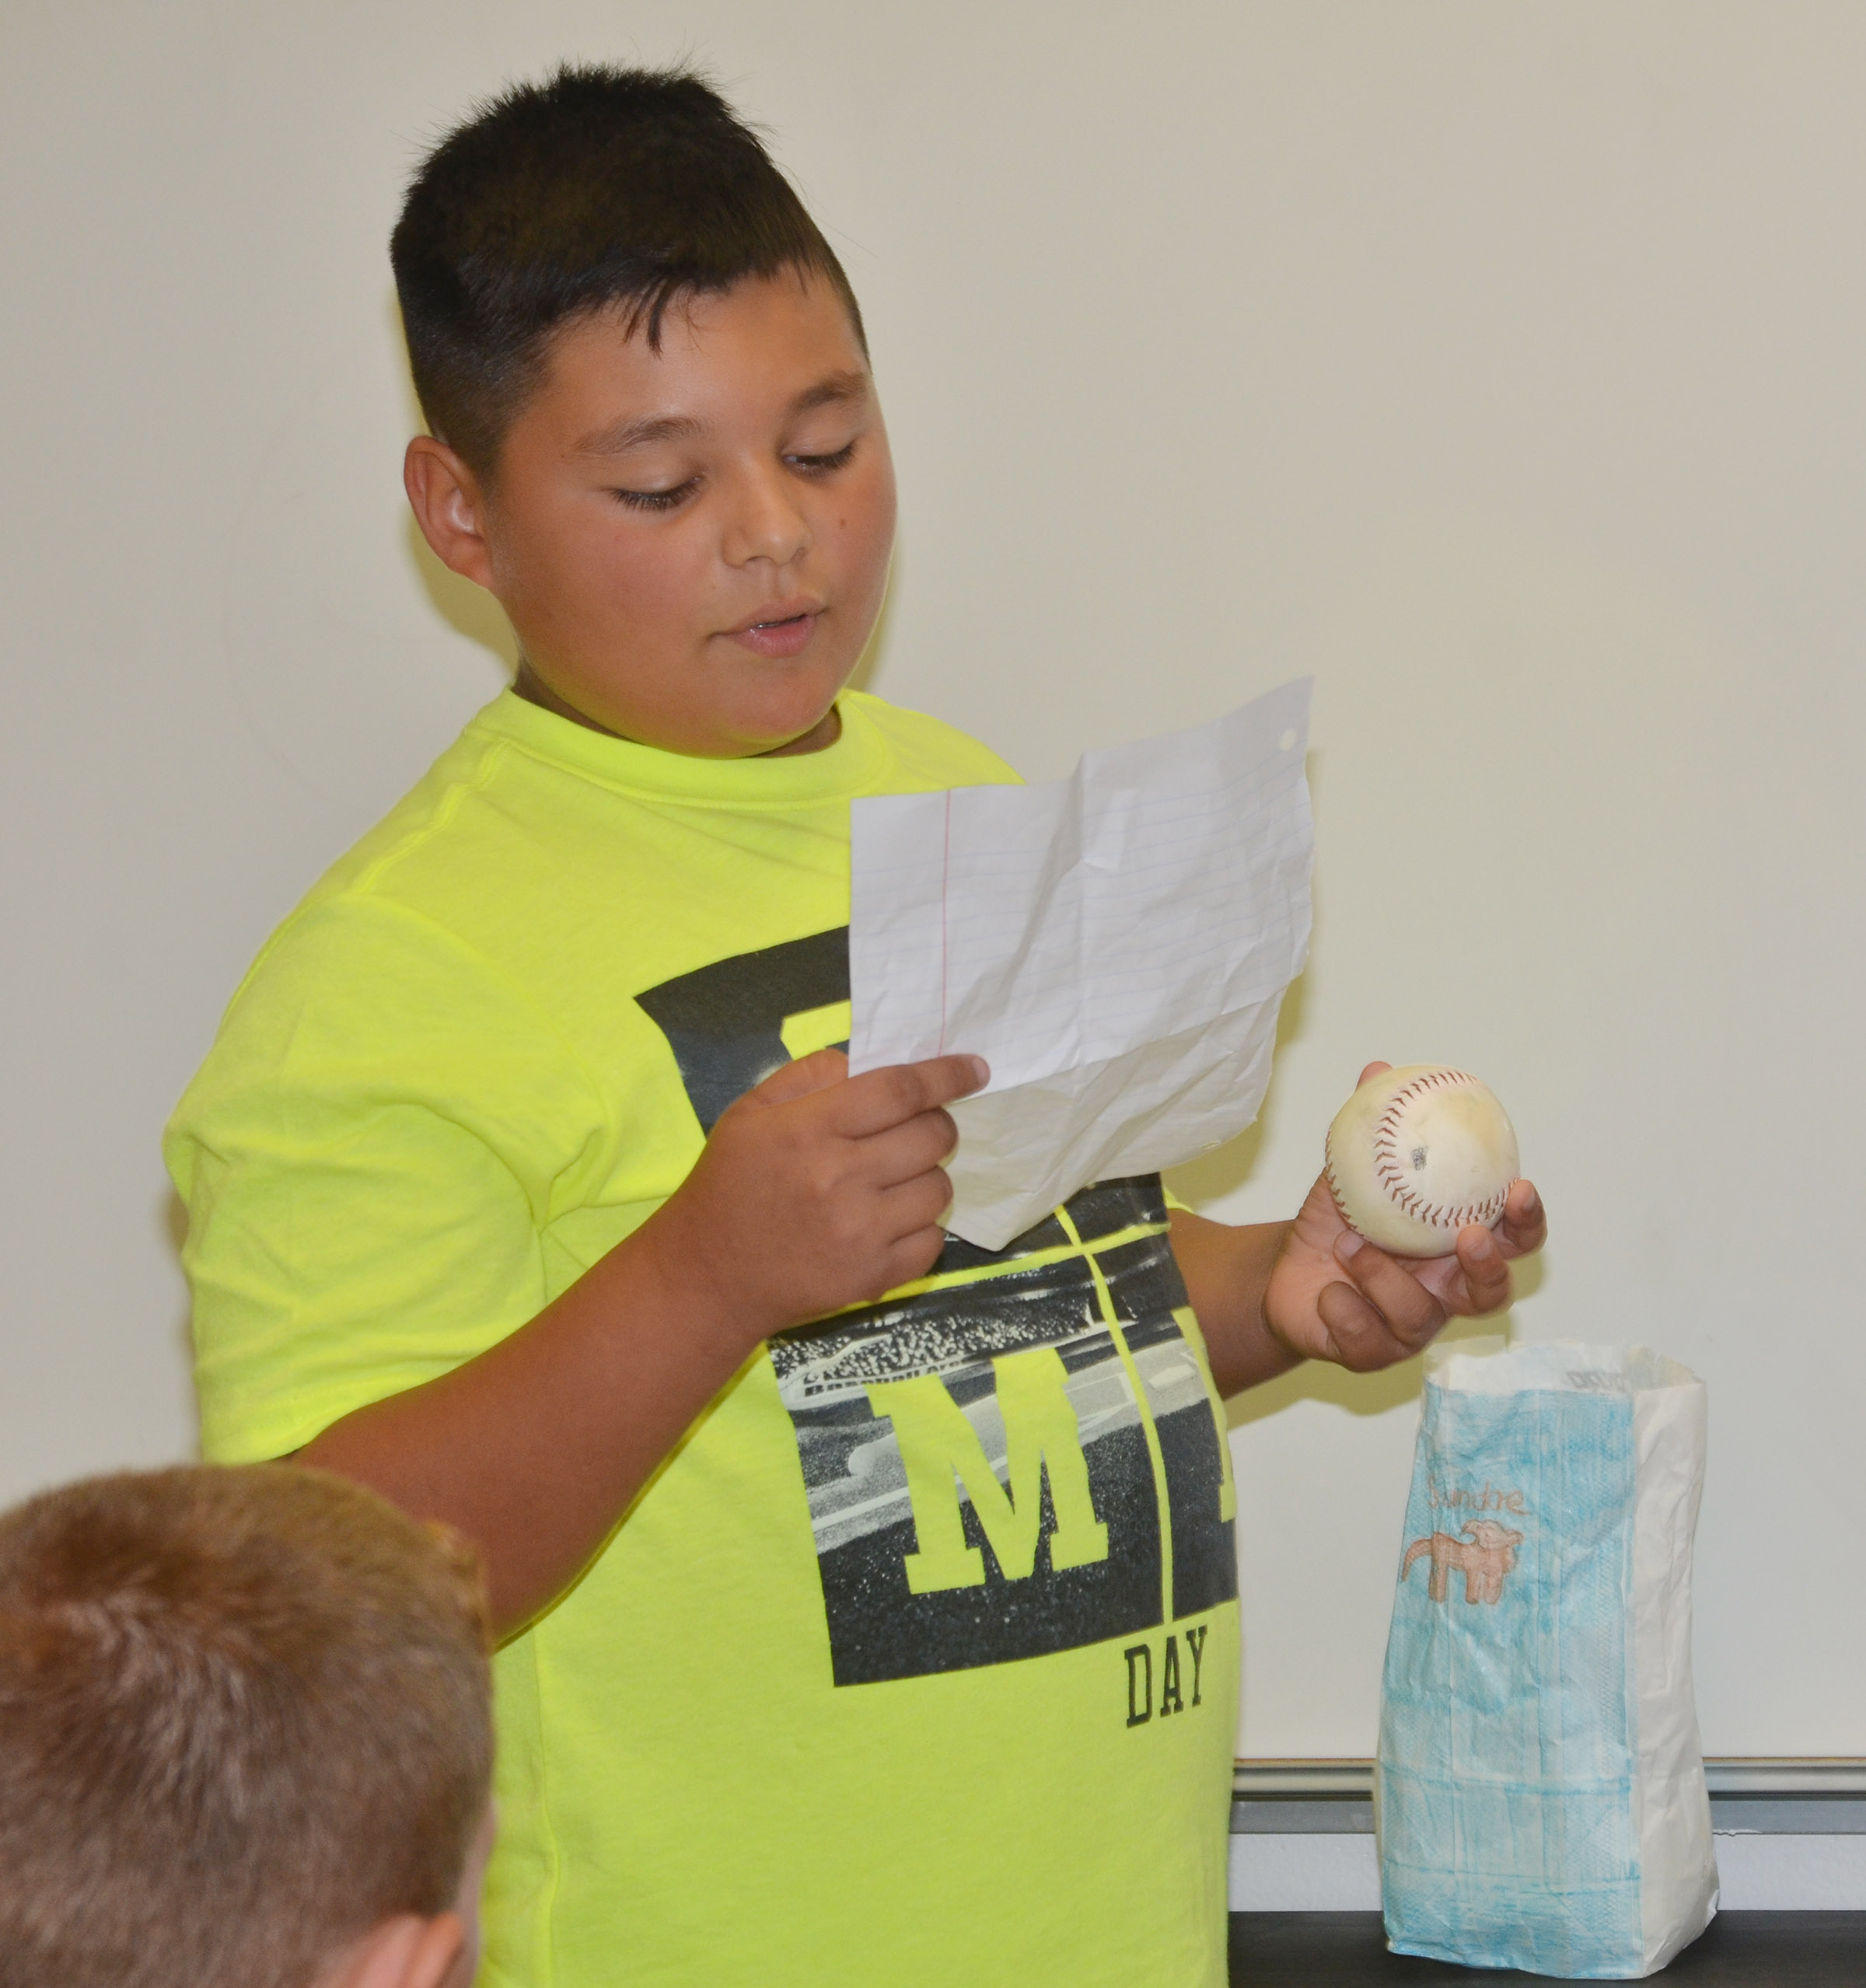 CES fourth-grader Brayden Paiz says he loves to play baseball.